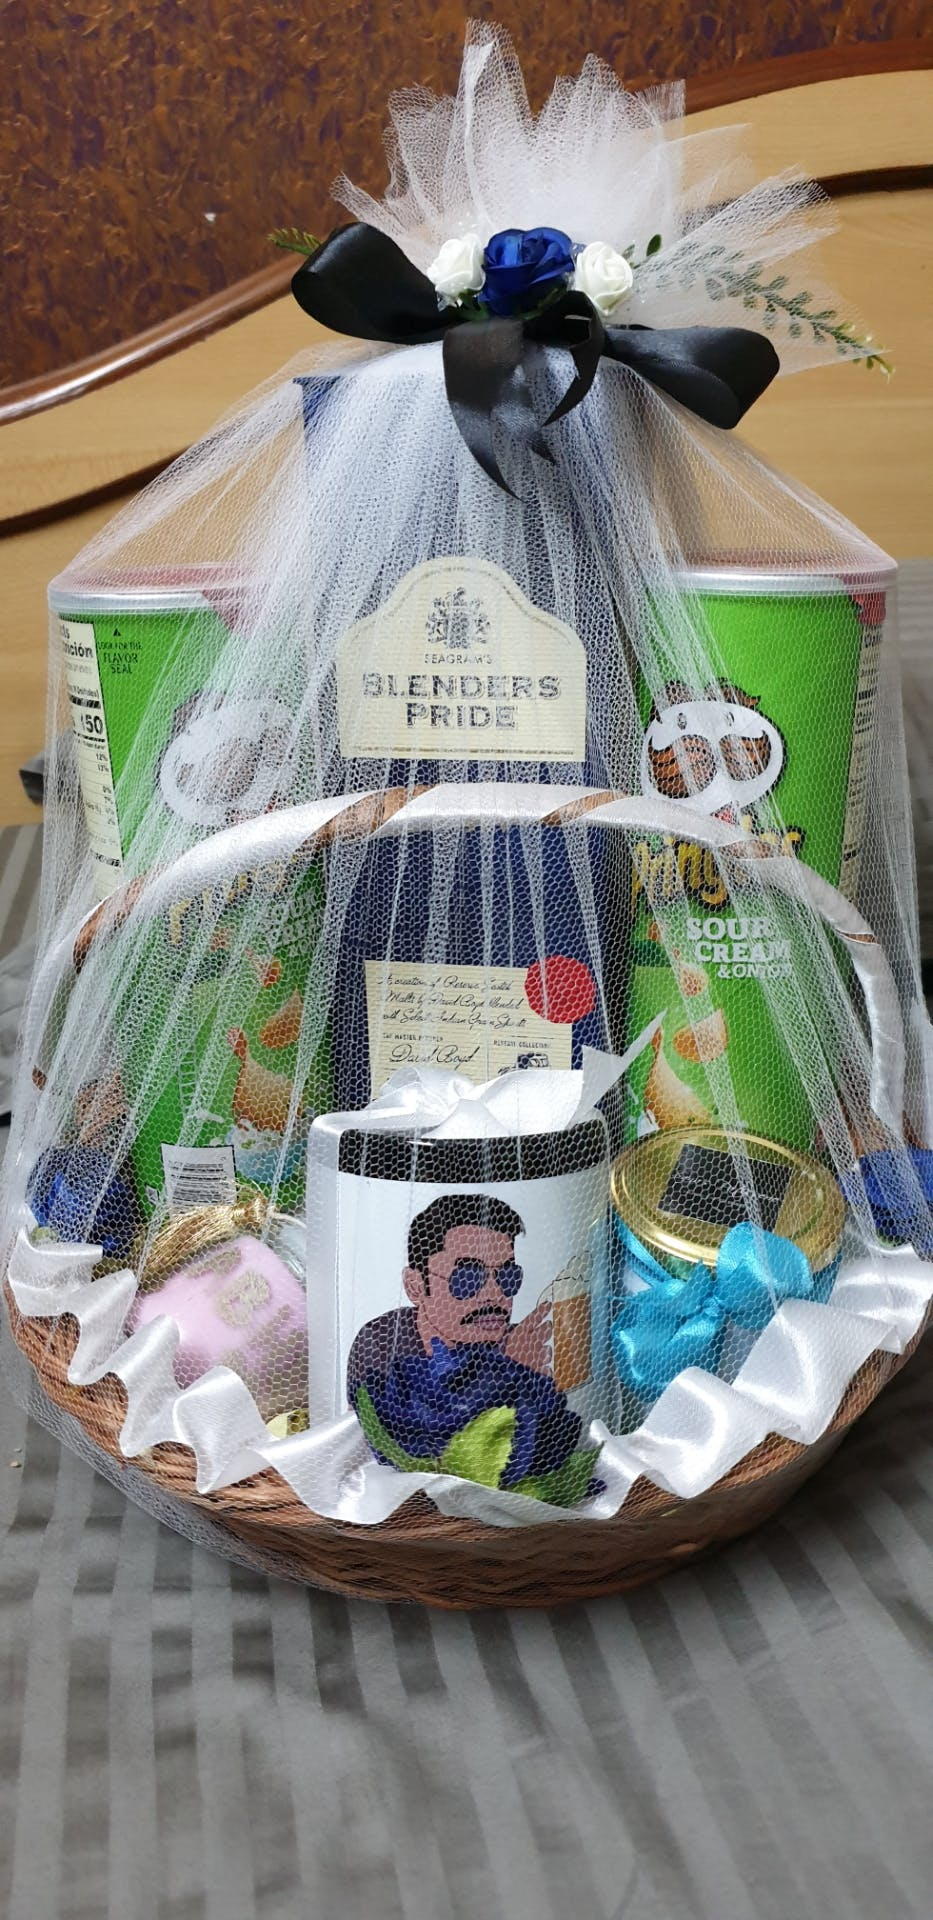 Gift basket,Present,Hamper,Mishloach manot,Basket,Ritual,Party favor,Ceremony,Home accessories